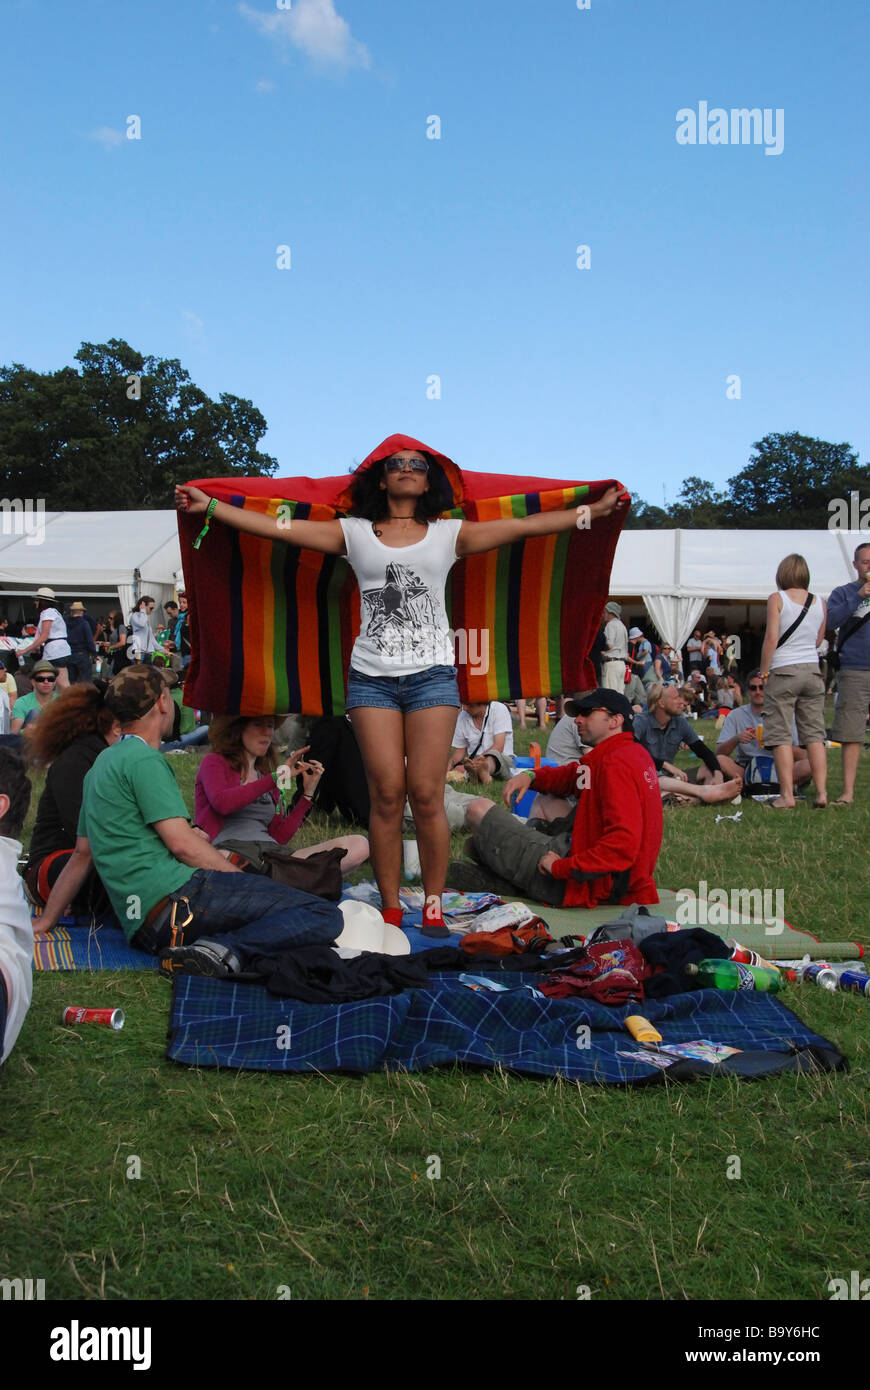 Woman in highly coloured Poncho at Big Chill music fest. - Stock Image